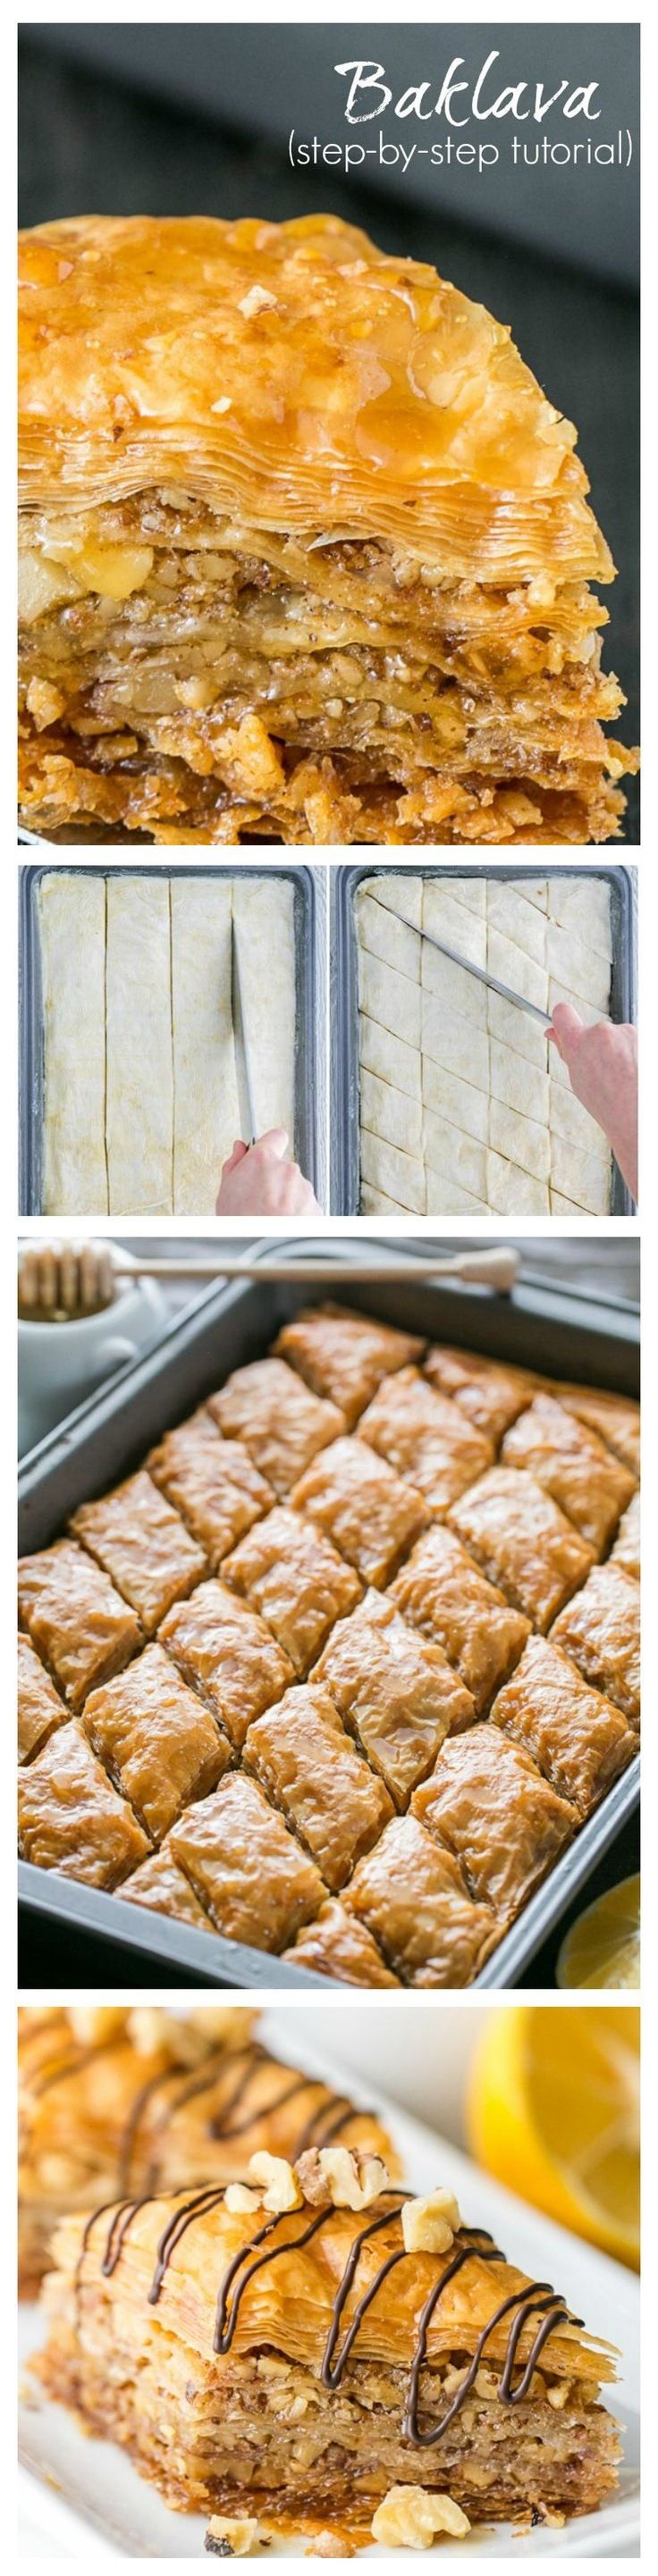 This honey baklava is flaky, crisp and tender and isn't overly sweet. You will love the hint of mellow lemony flavor which offsets the sweetness and compliments the cinnamon. It's truly delicious. This recipe can be made several days in advance of your shindig and keeps beautifully at room temperature for at least a week.